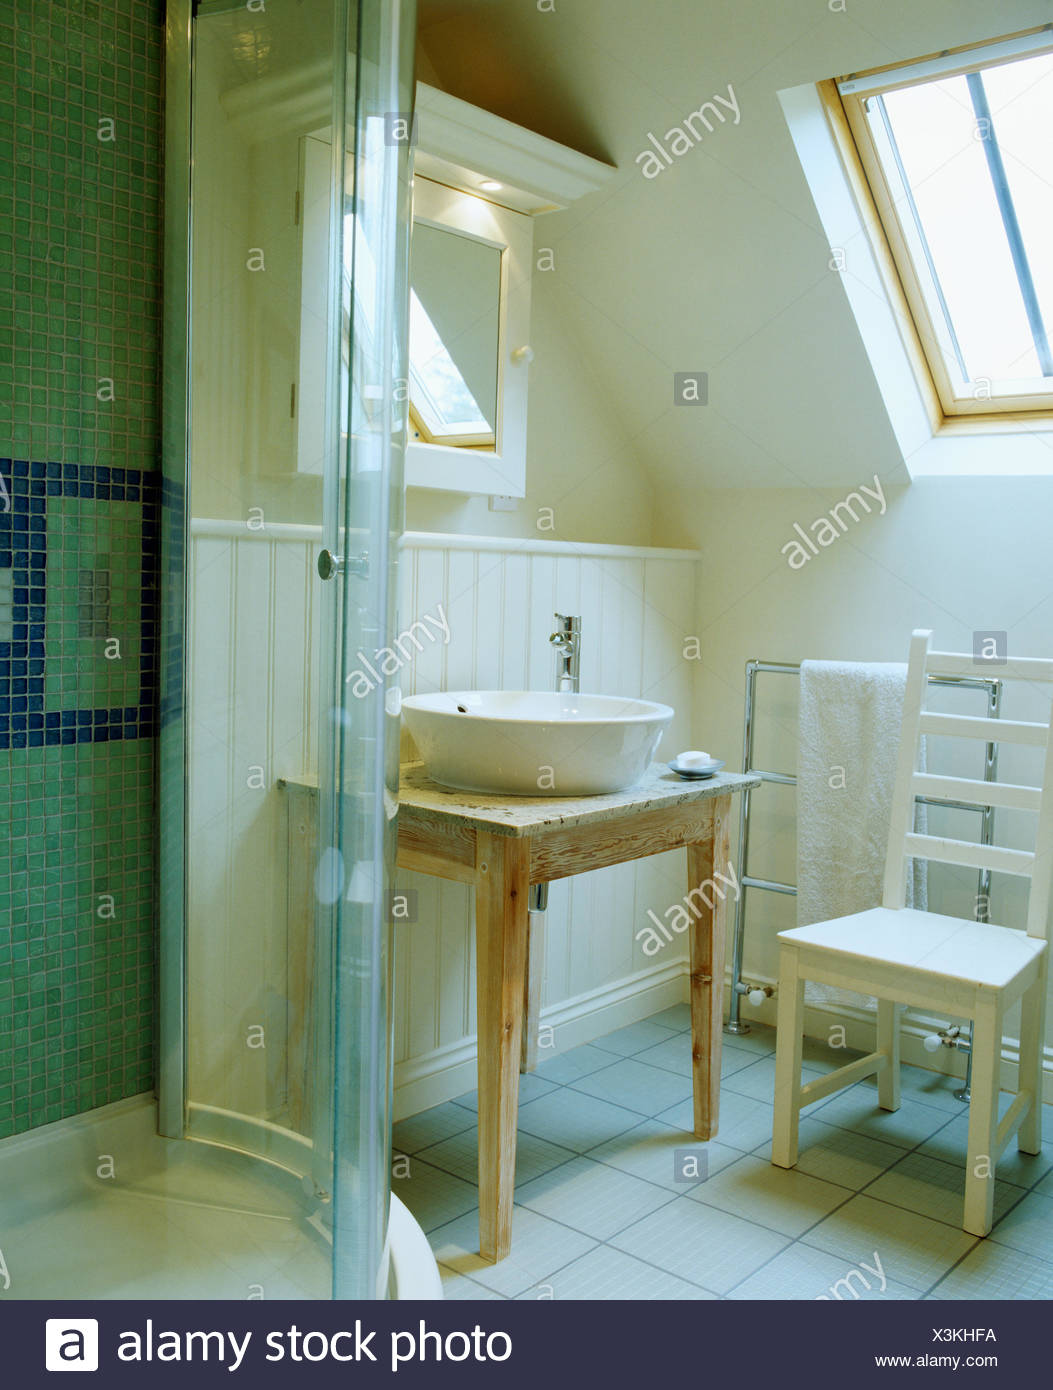 White bowl basin on wooden table in small attic bathroom with white ...